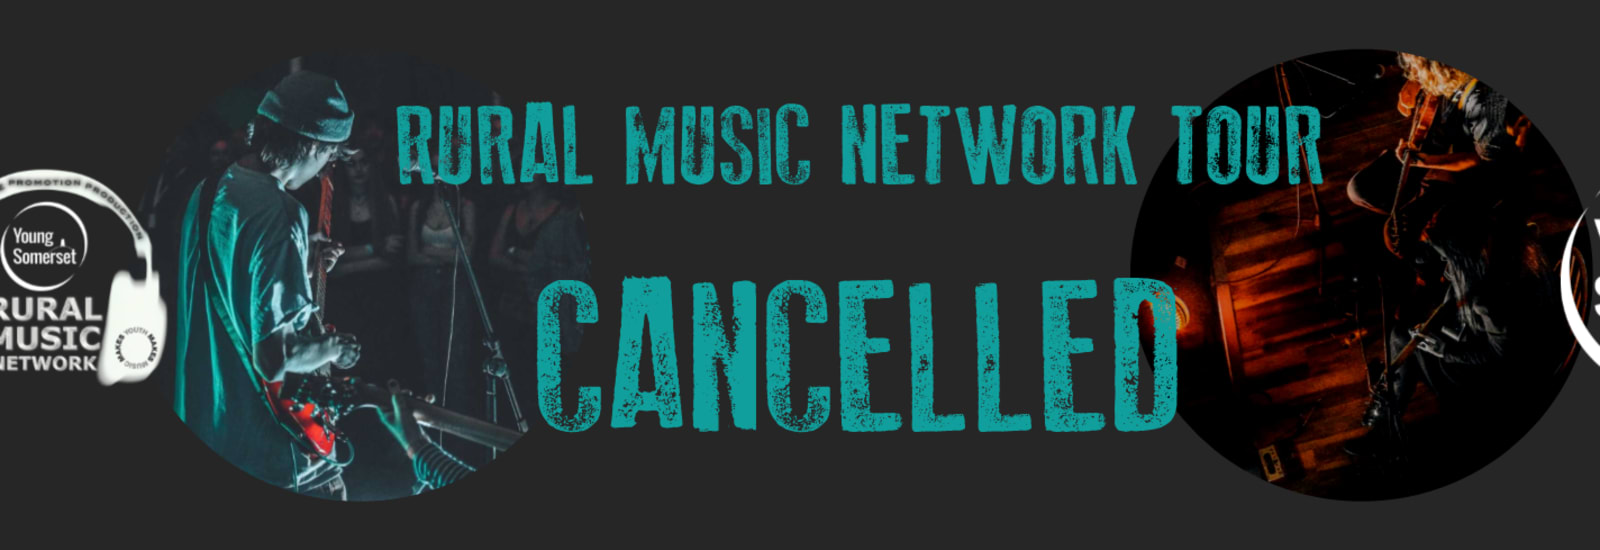 The Rural Music Network Tour - Cancelled